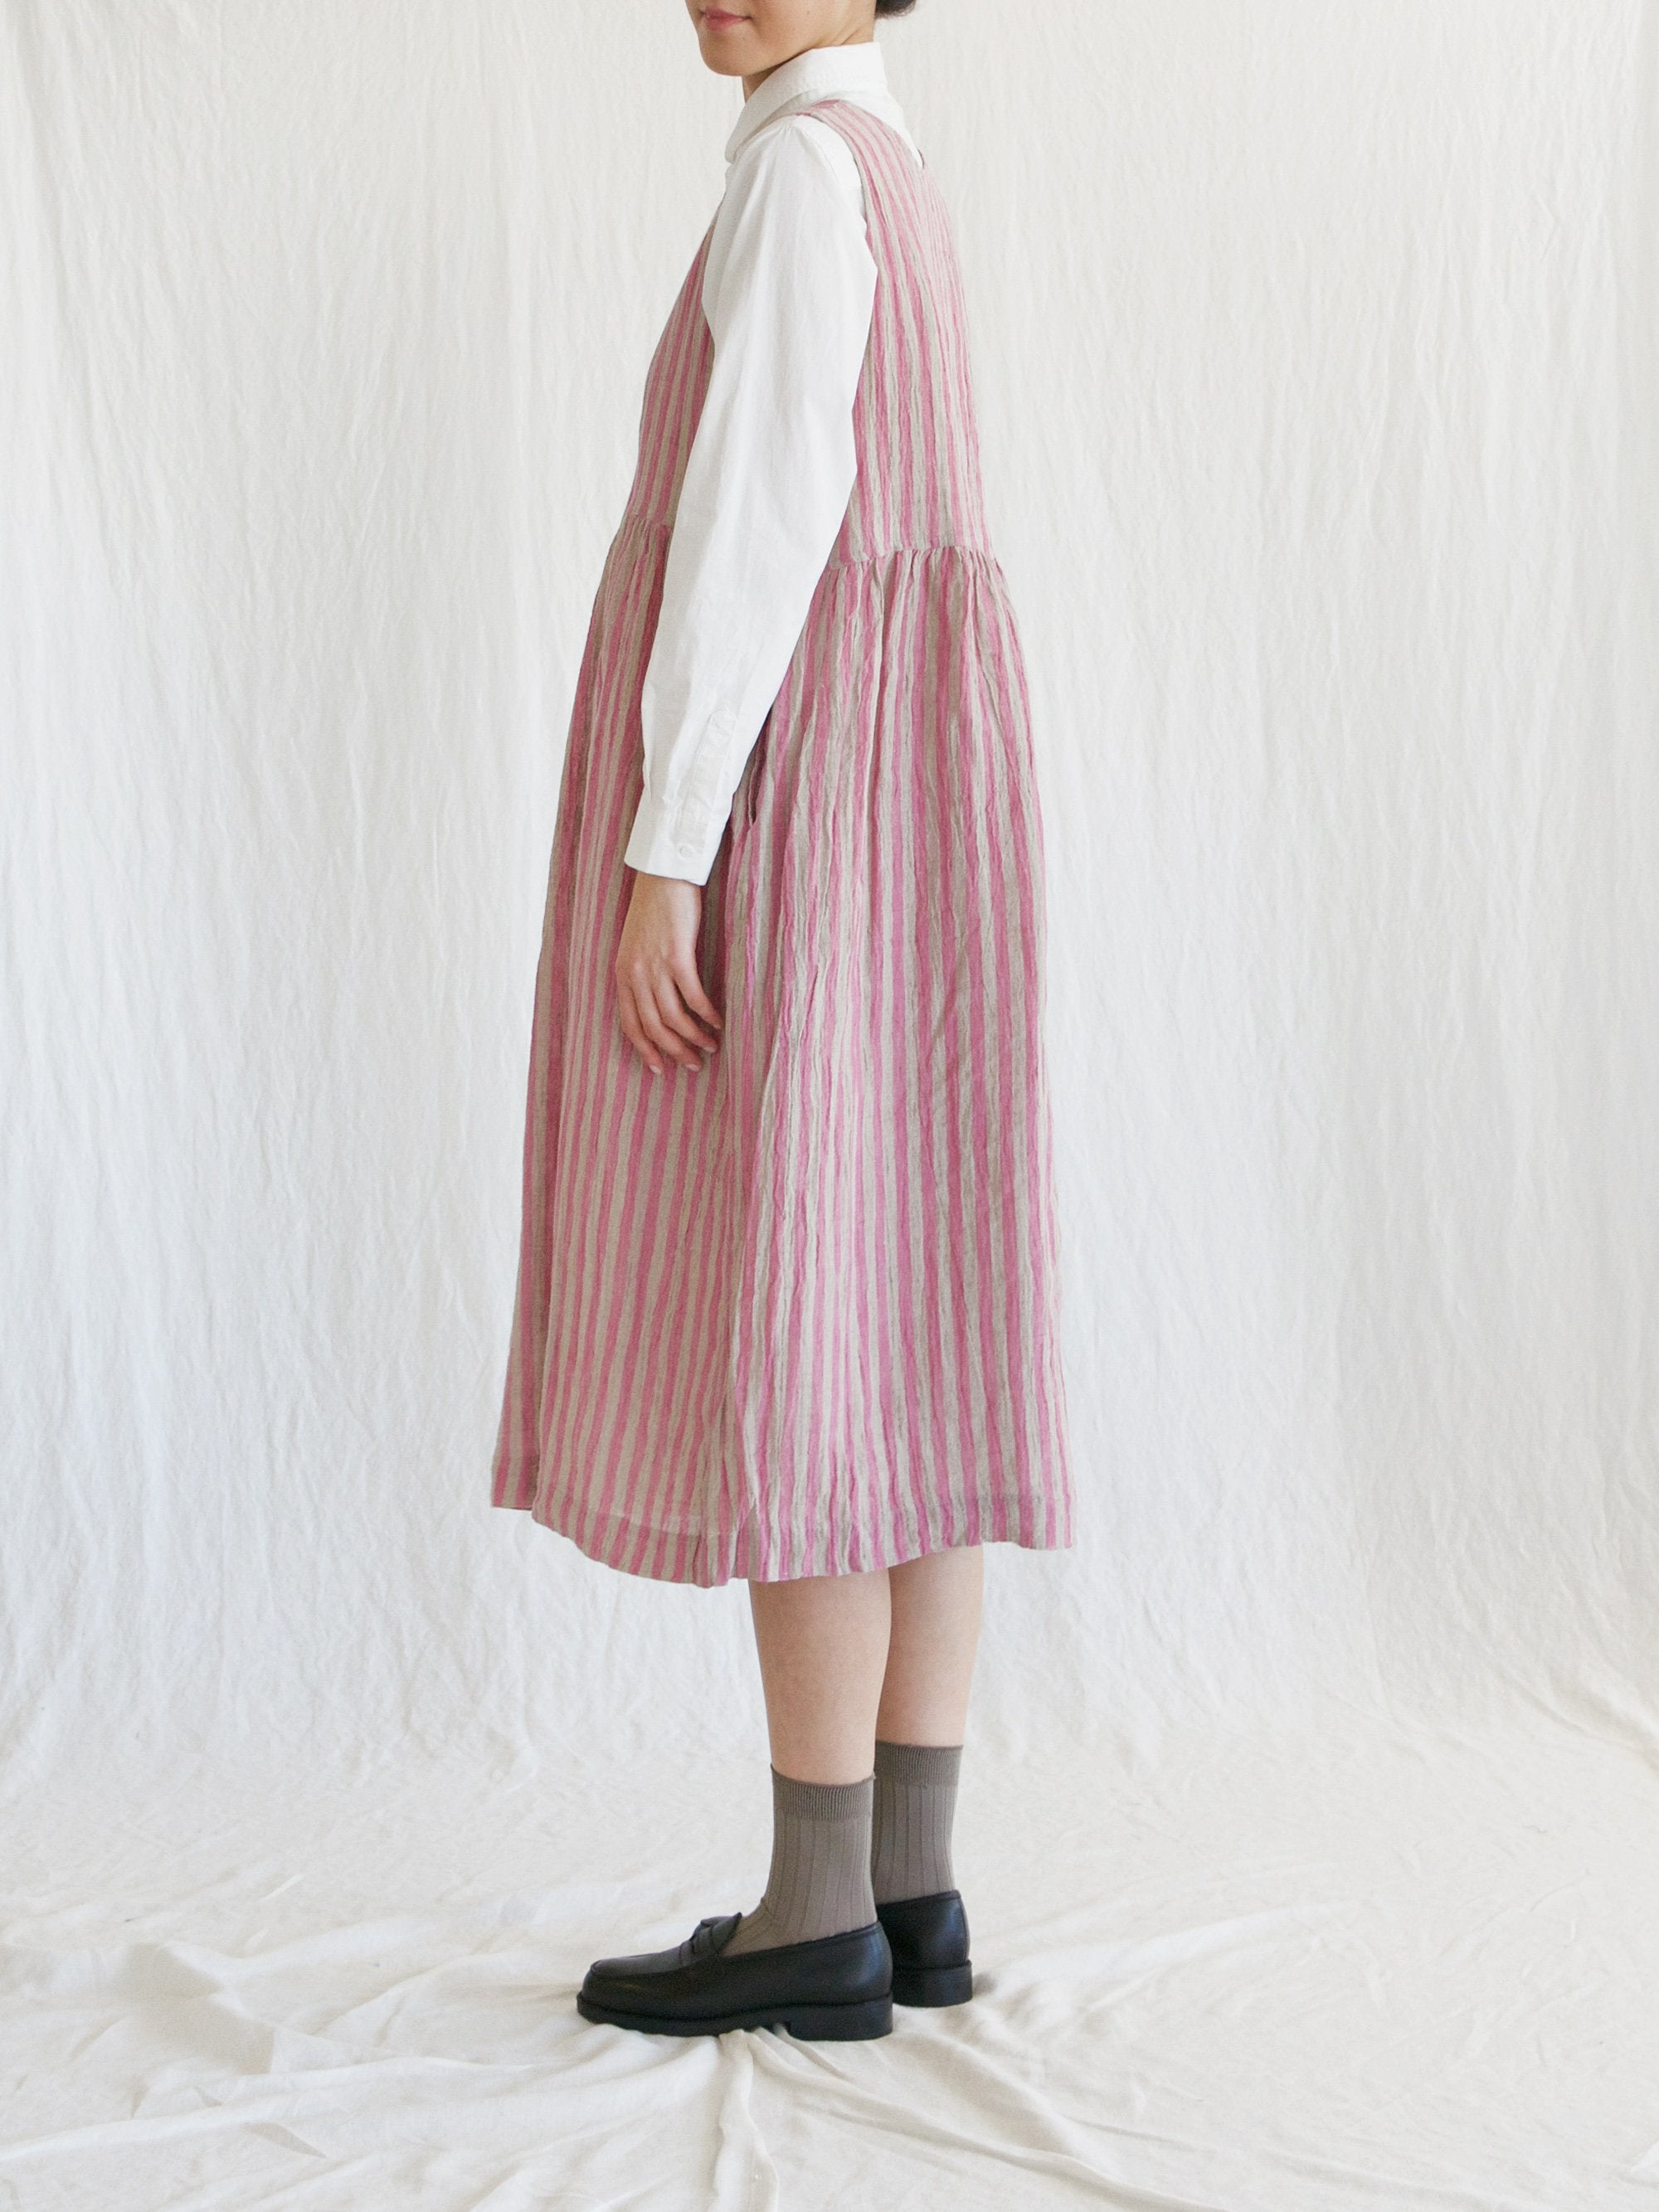 Namu Shop - Ichi Antiquites Sleeveless Linen Dress - Pink Stripe